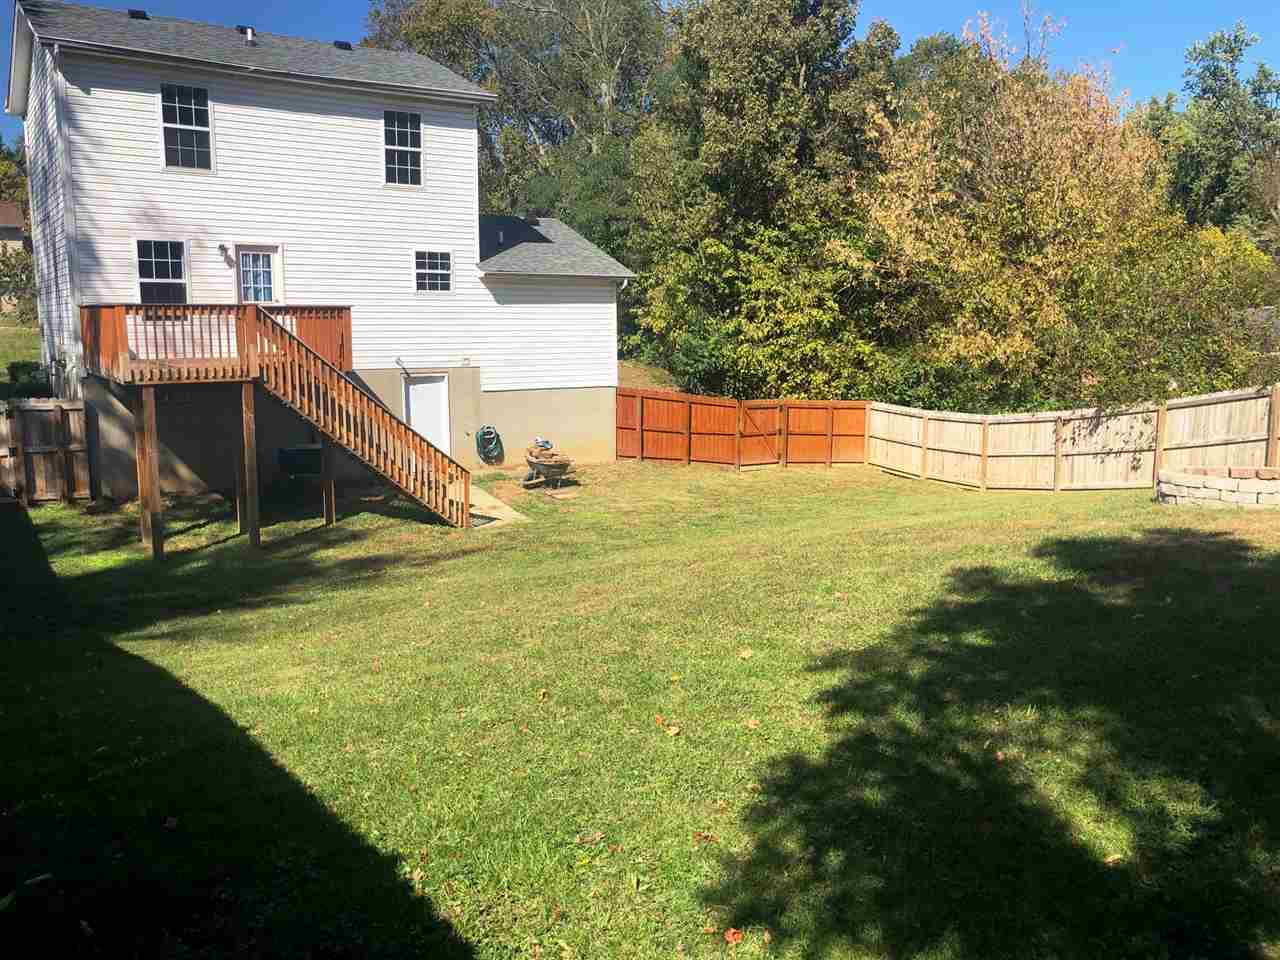 Photo 2 for 215 Palace Ave Elsmere, KY 41018